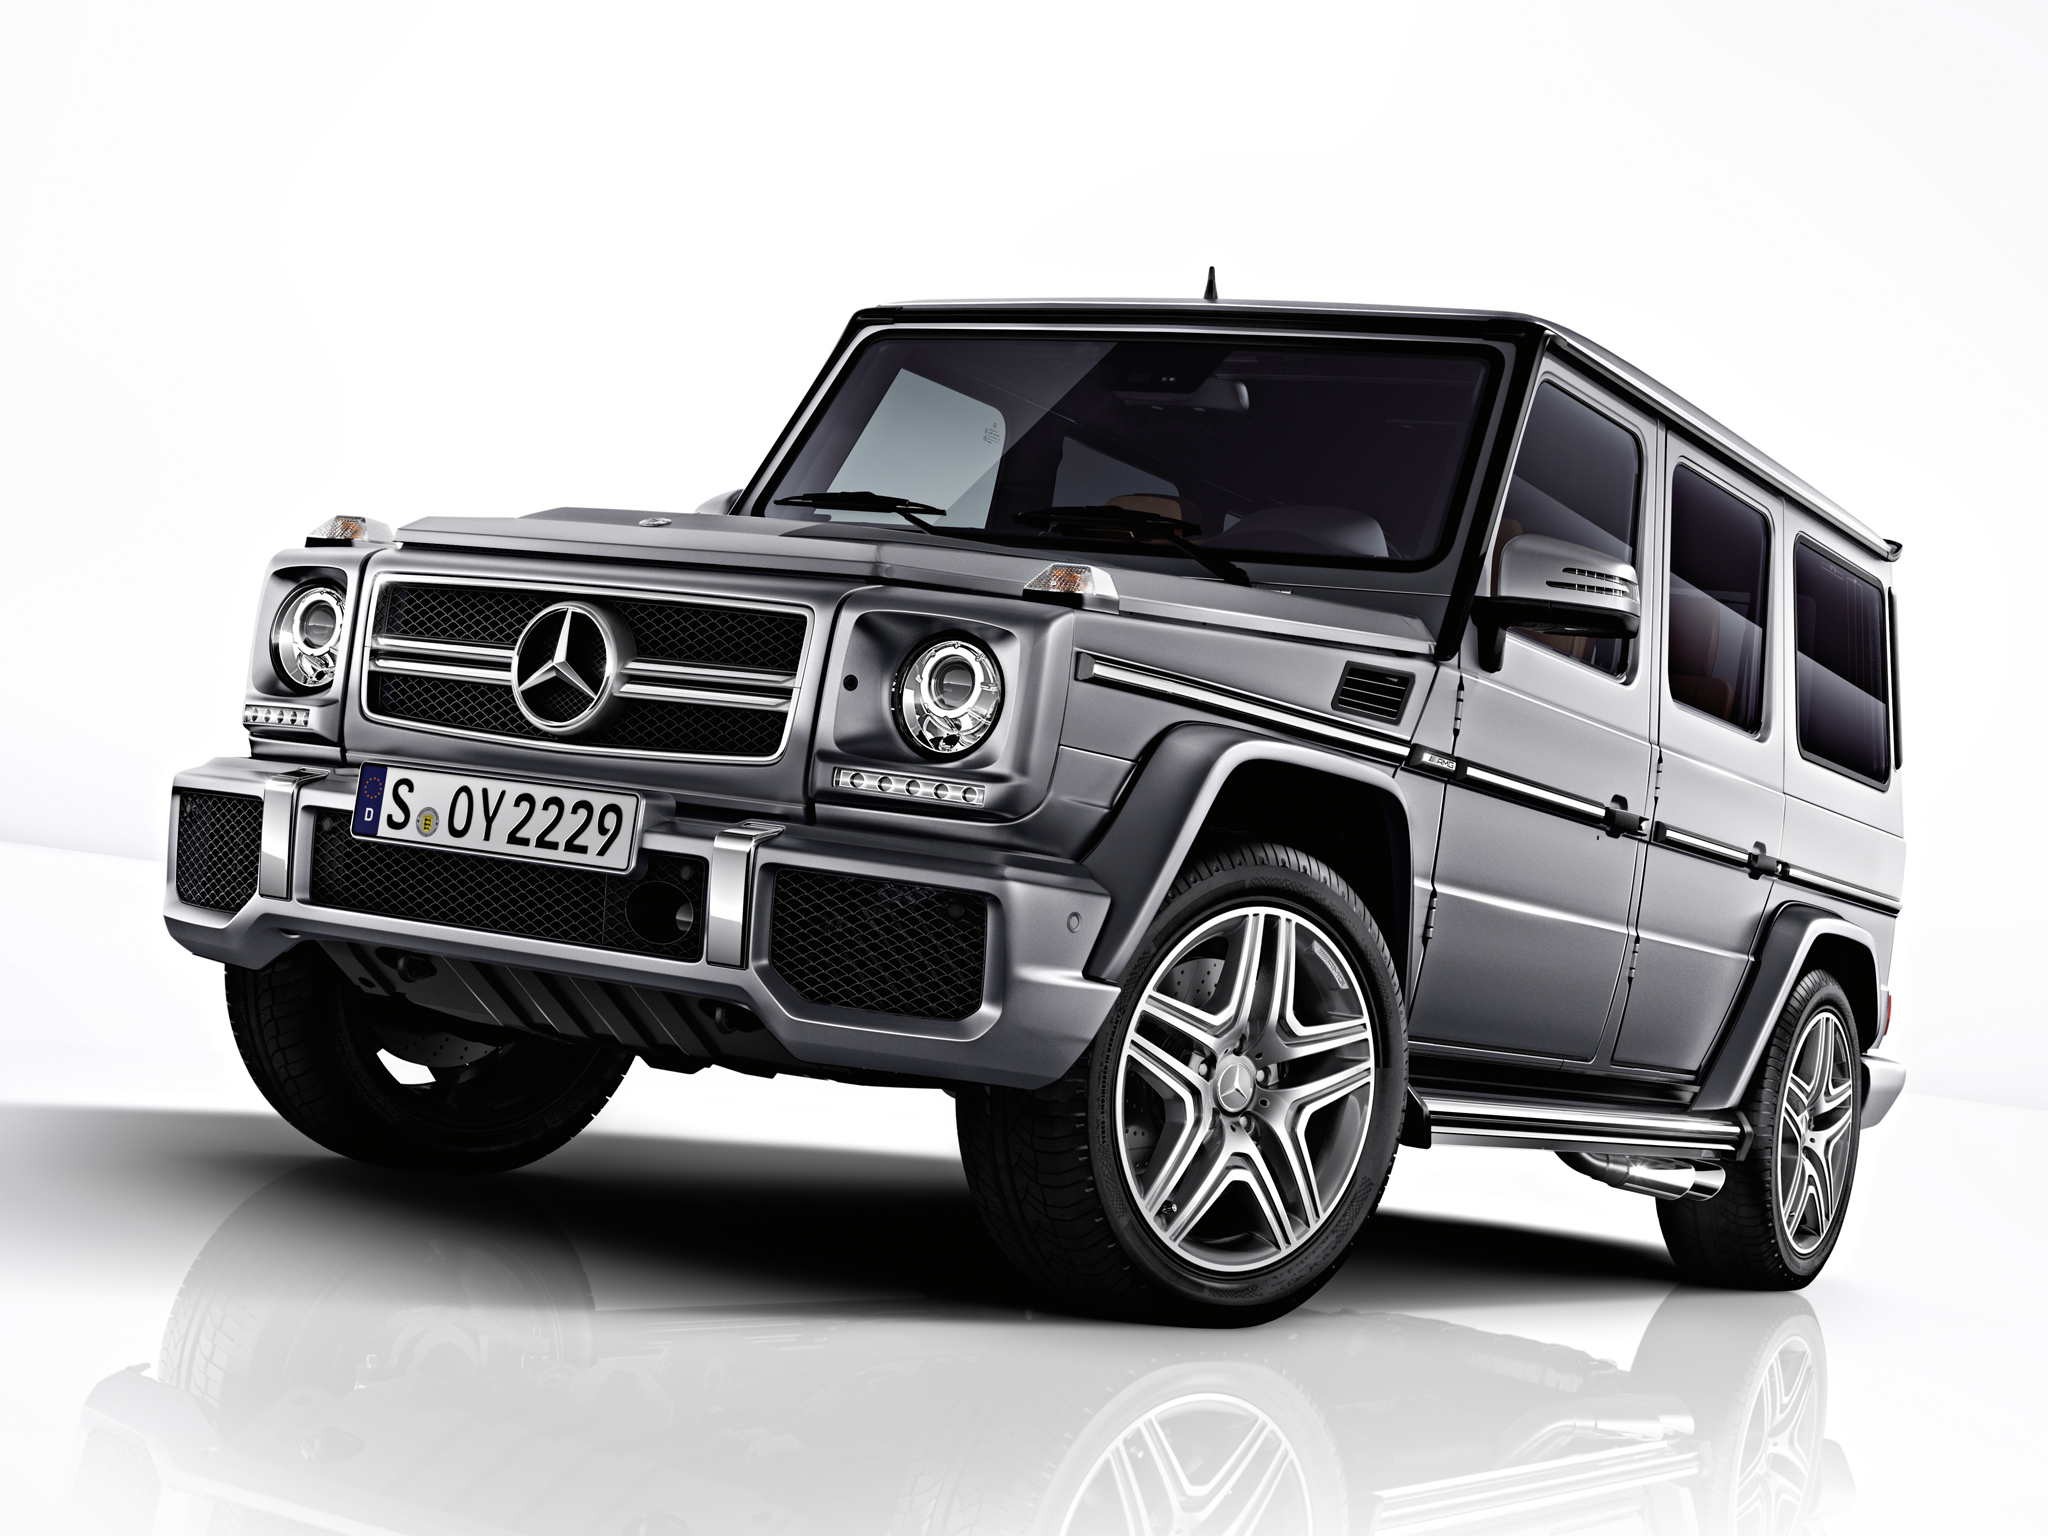 Mercedes Benz G Class Amg Photos Reviews News Specs